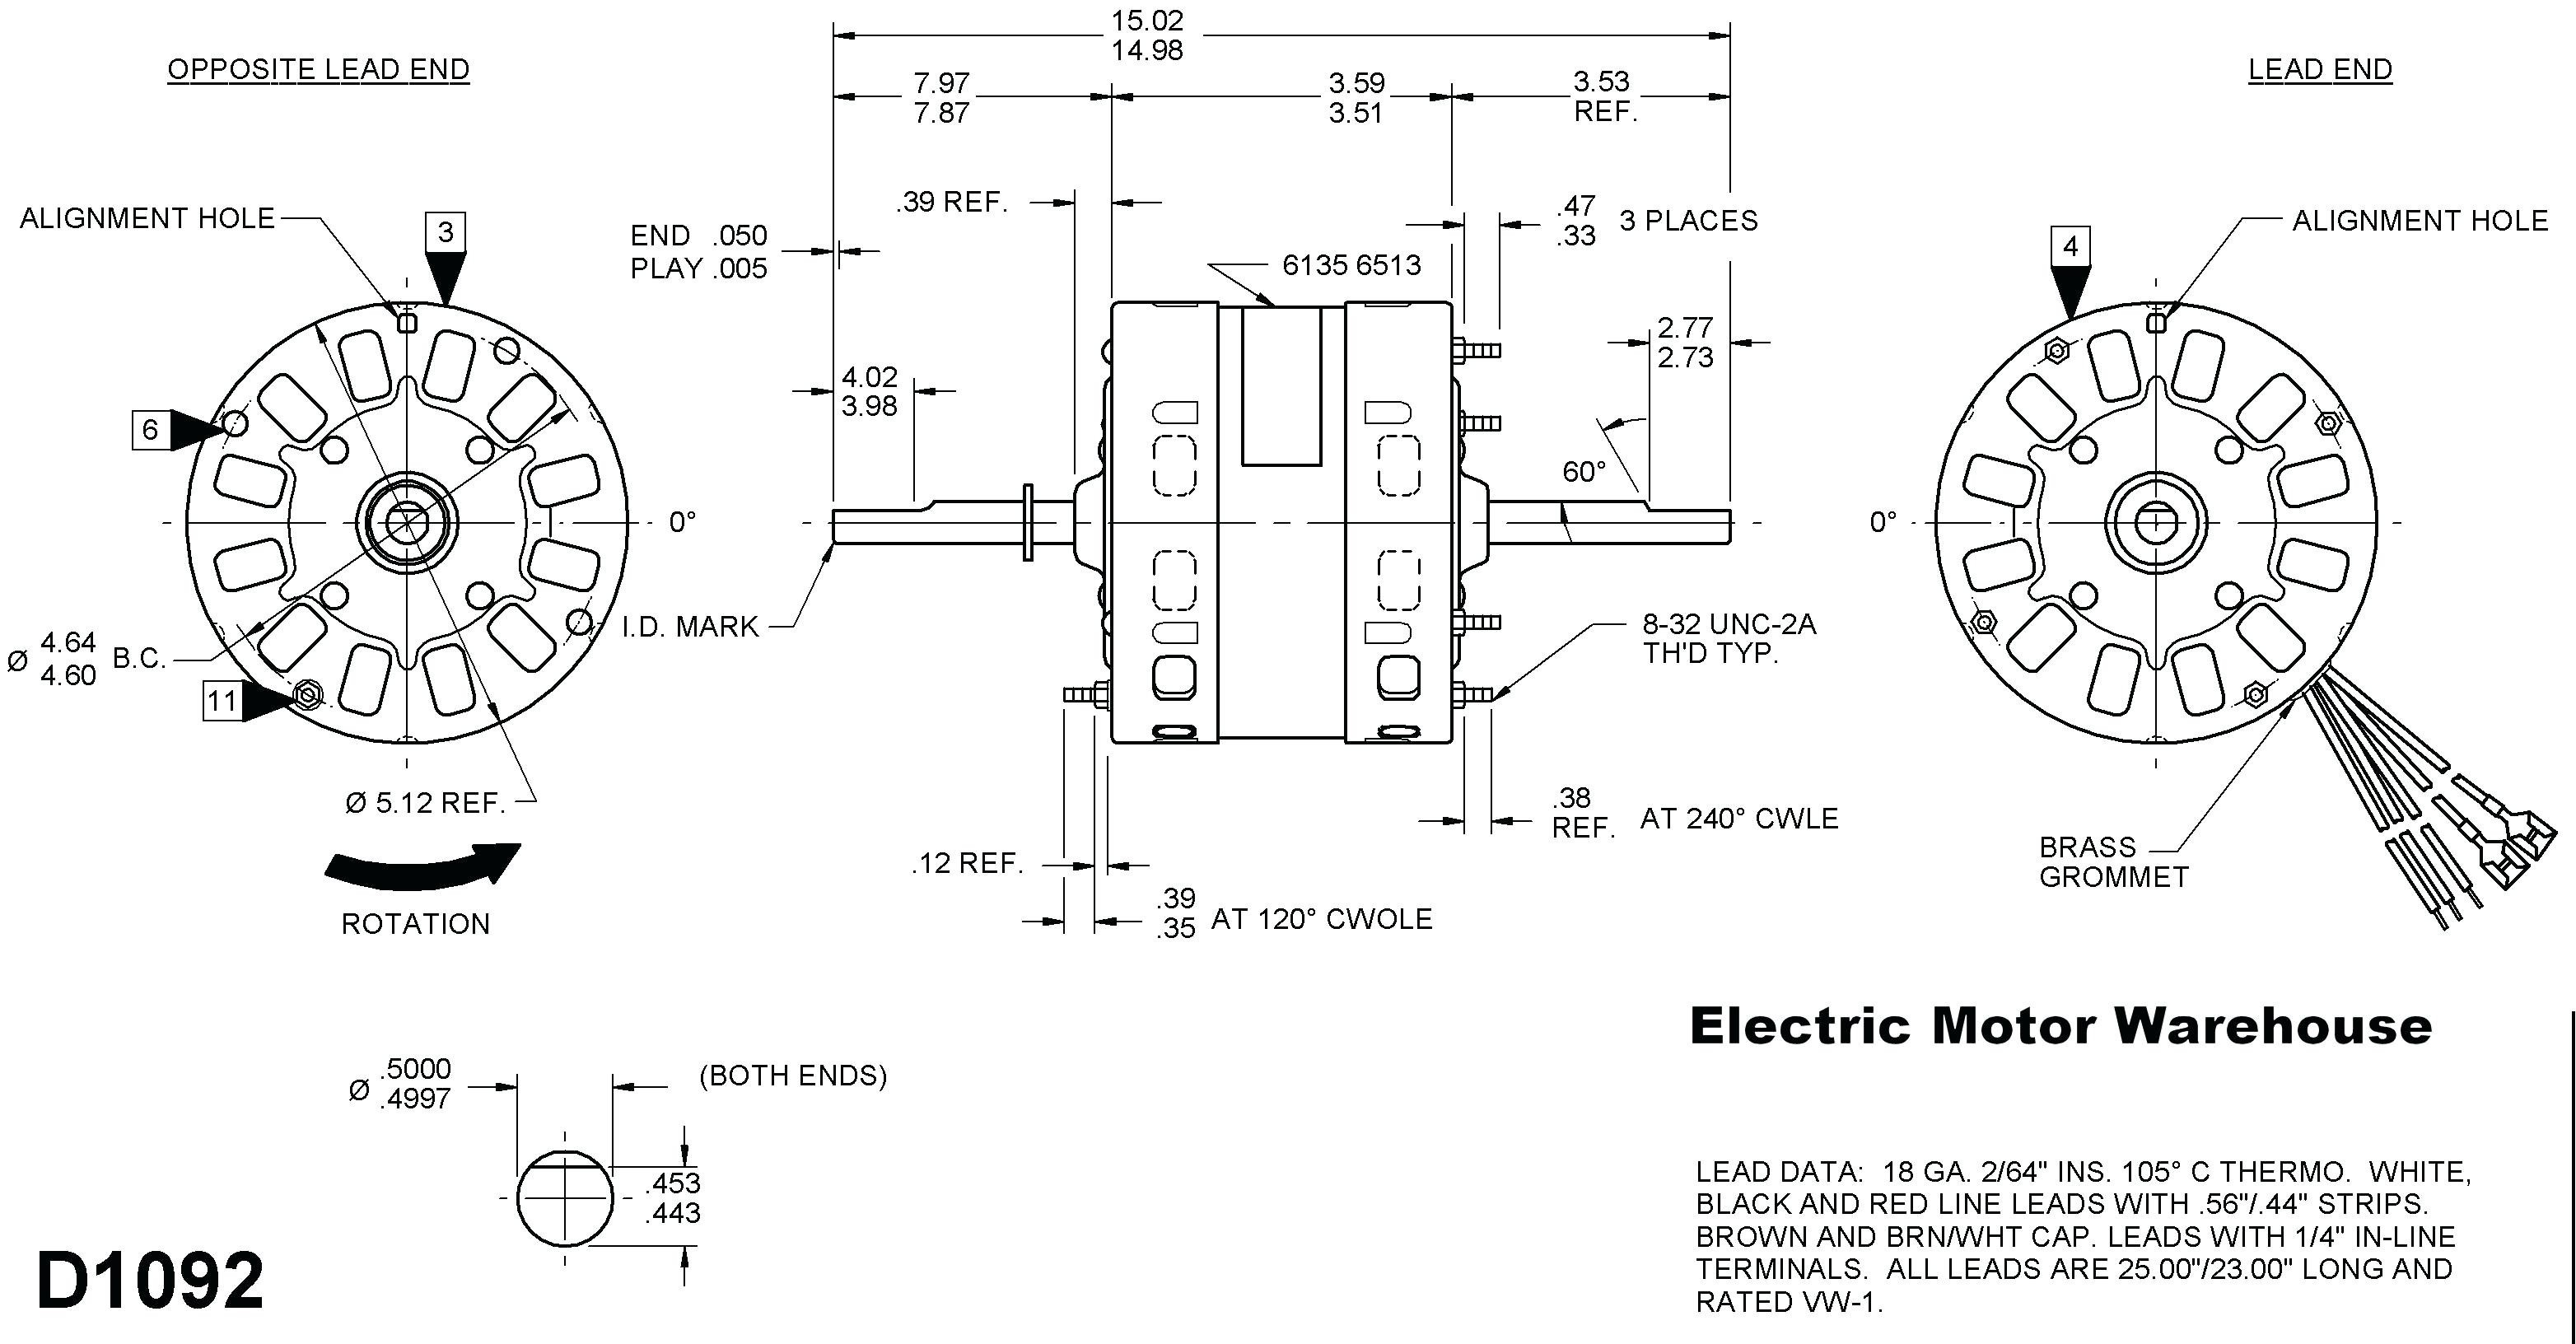 marathon motors wiring diagrams l1410t baldor electric motors wiring diagrams #11